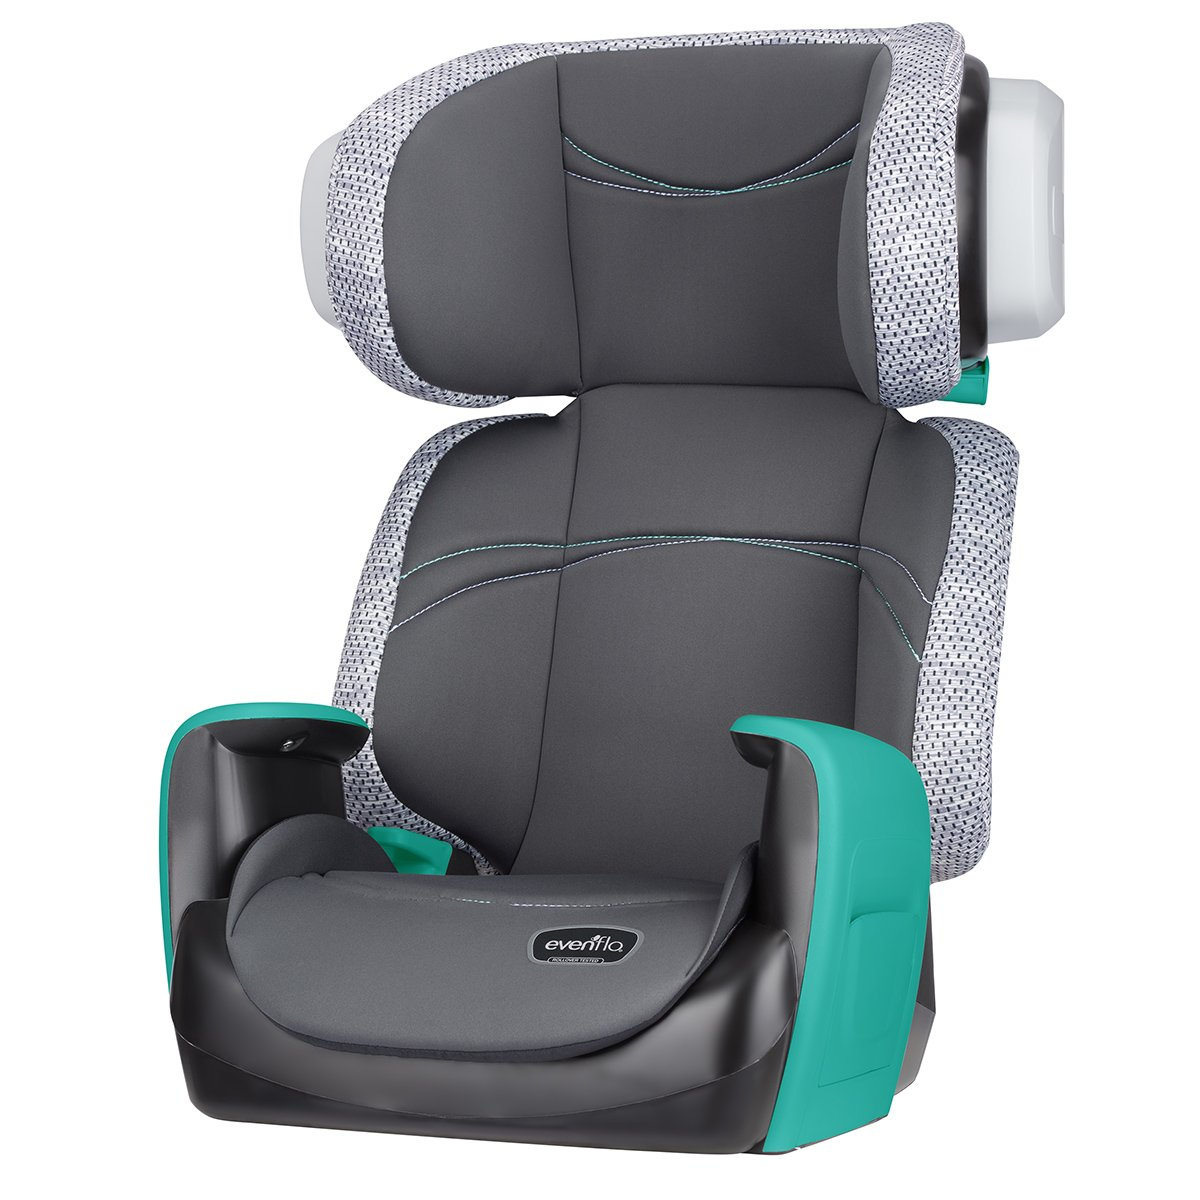 Amazon.com: Evenflo Spectrum - Asiento de coche 2 en 1: Baby